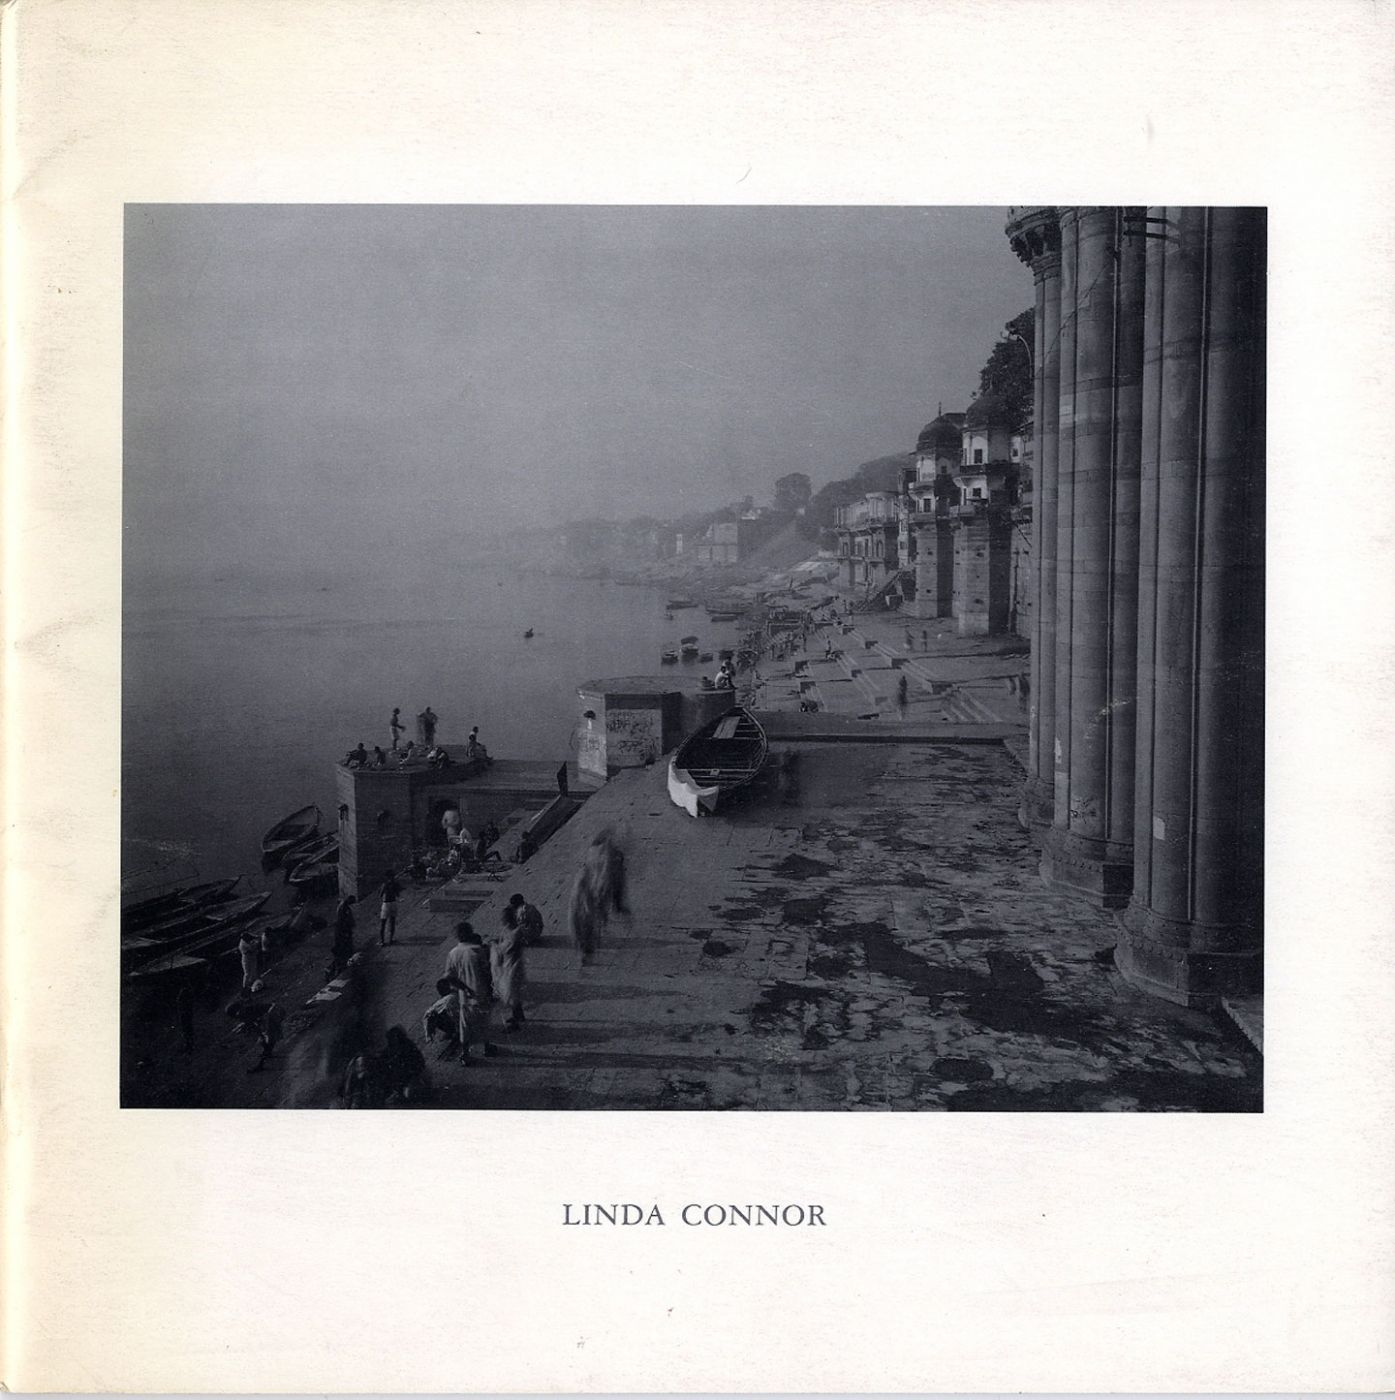 Linda Connor (The Corcoran Gallery of Art) [SIGNED ASSOCIATION COPY]